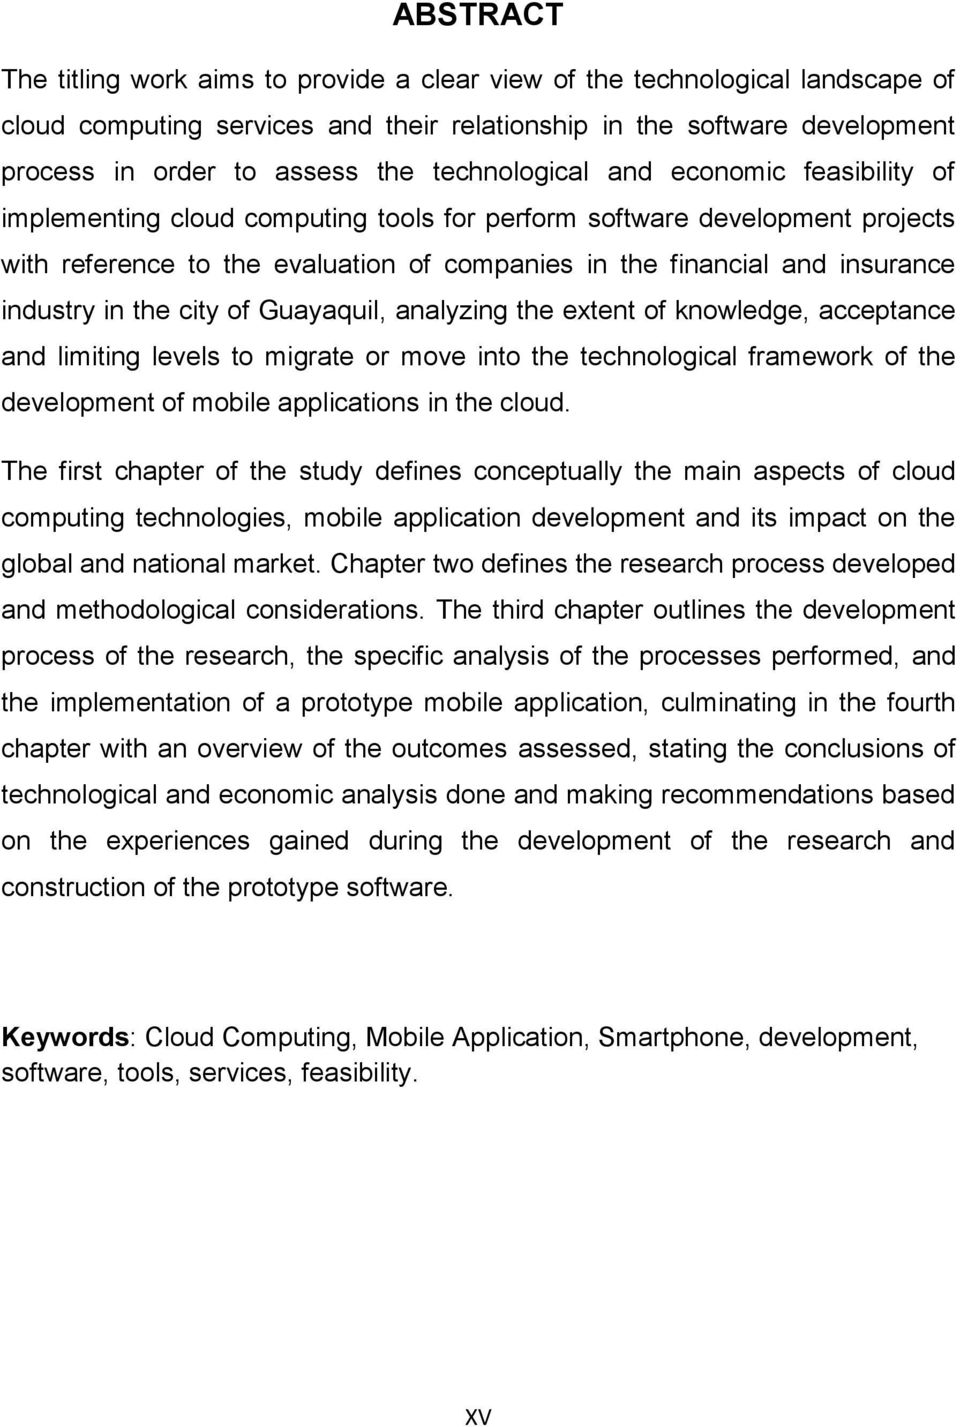 industry in the city of Guayaquil, analyzing the extent of knowledge, acceptance and limiting levels to migrate or move into the technological framework of the development of mobile applications in